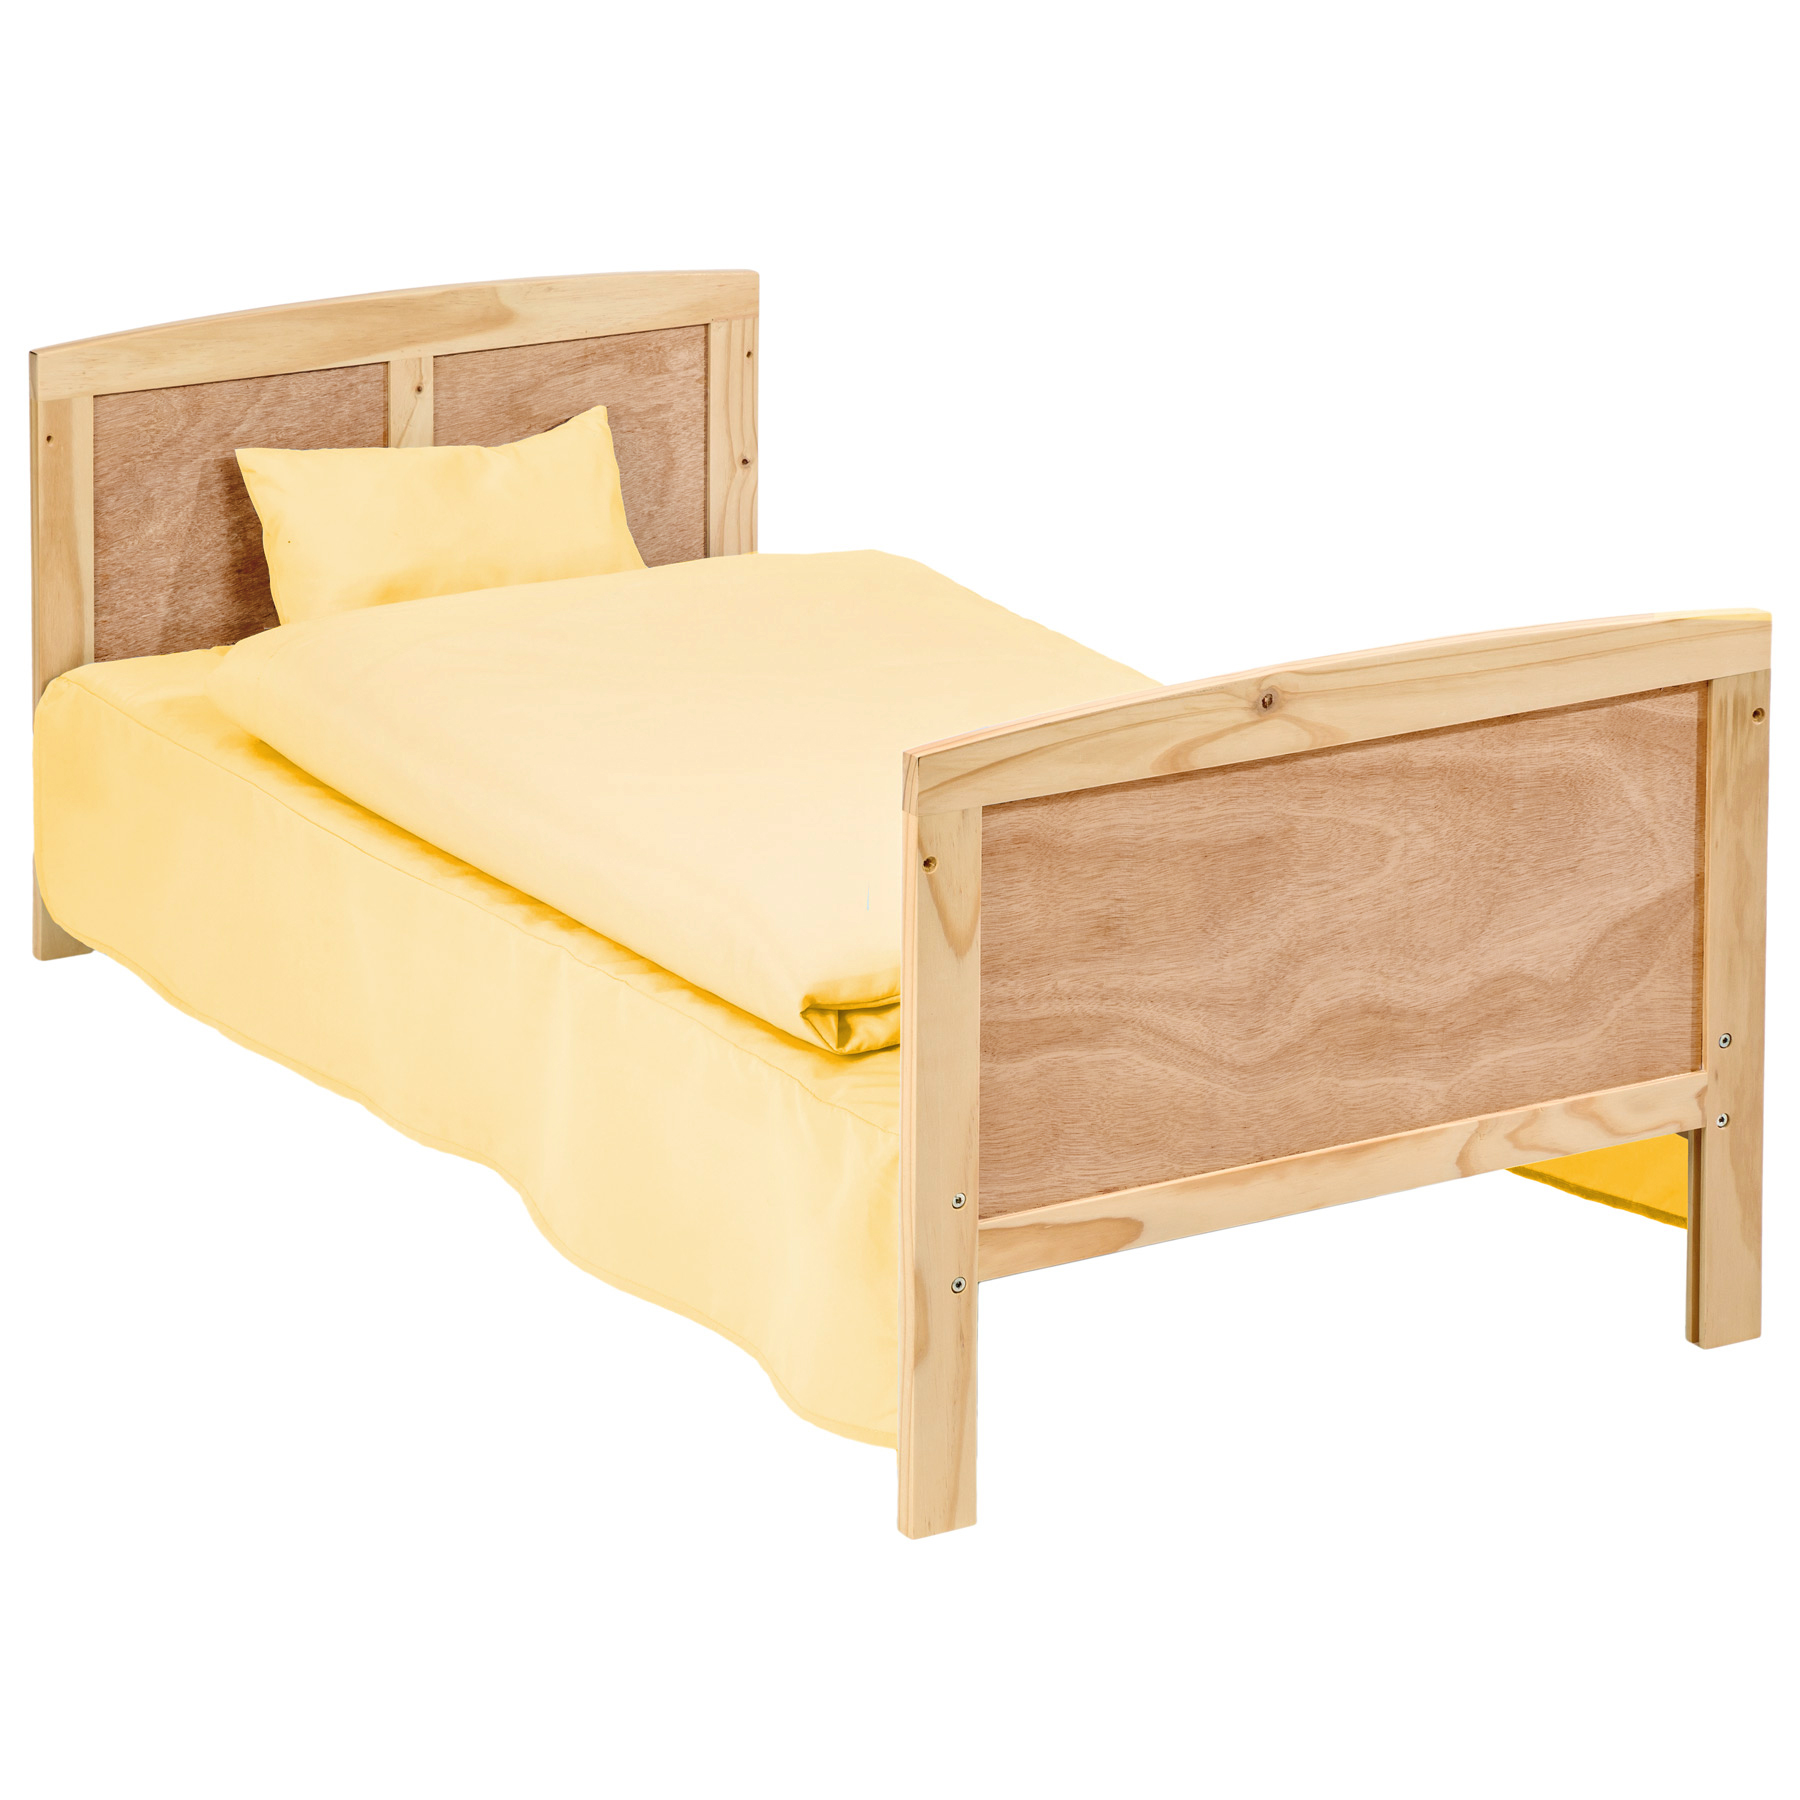 lit de b b baldaquin moustiquaire combi complet literie pour enfant jaune. Black Bedroom Furniture Sets. Home Design Ideas